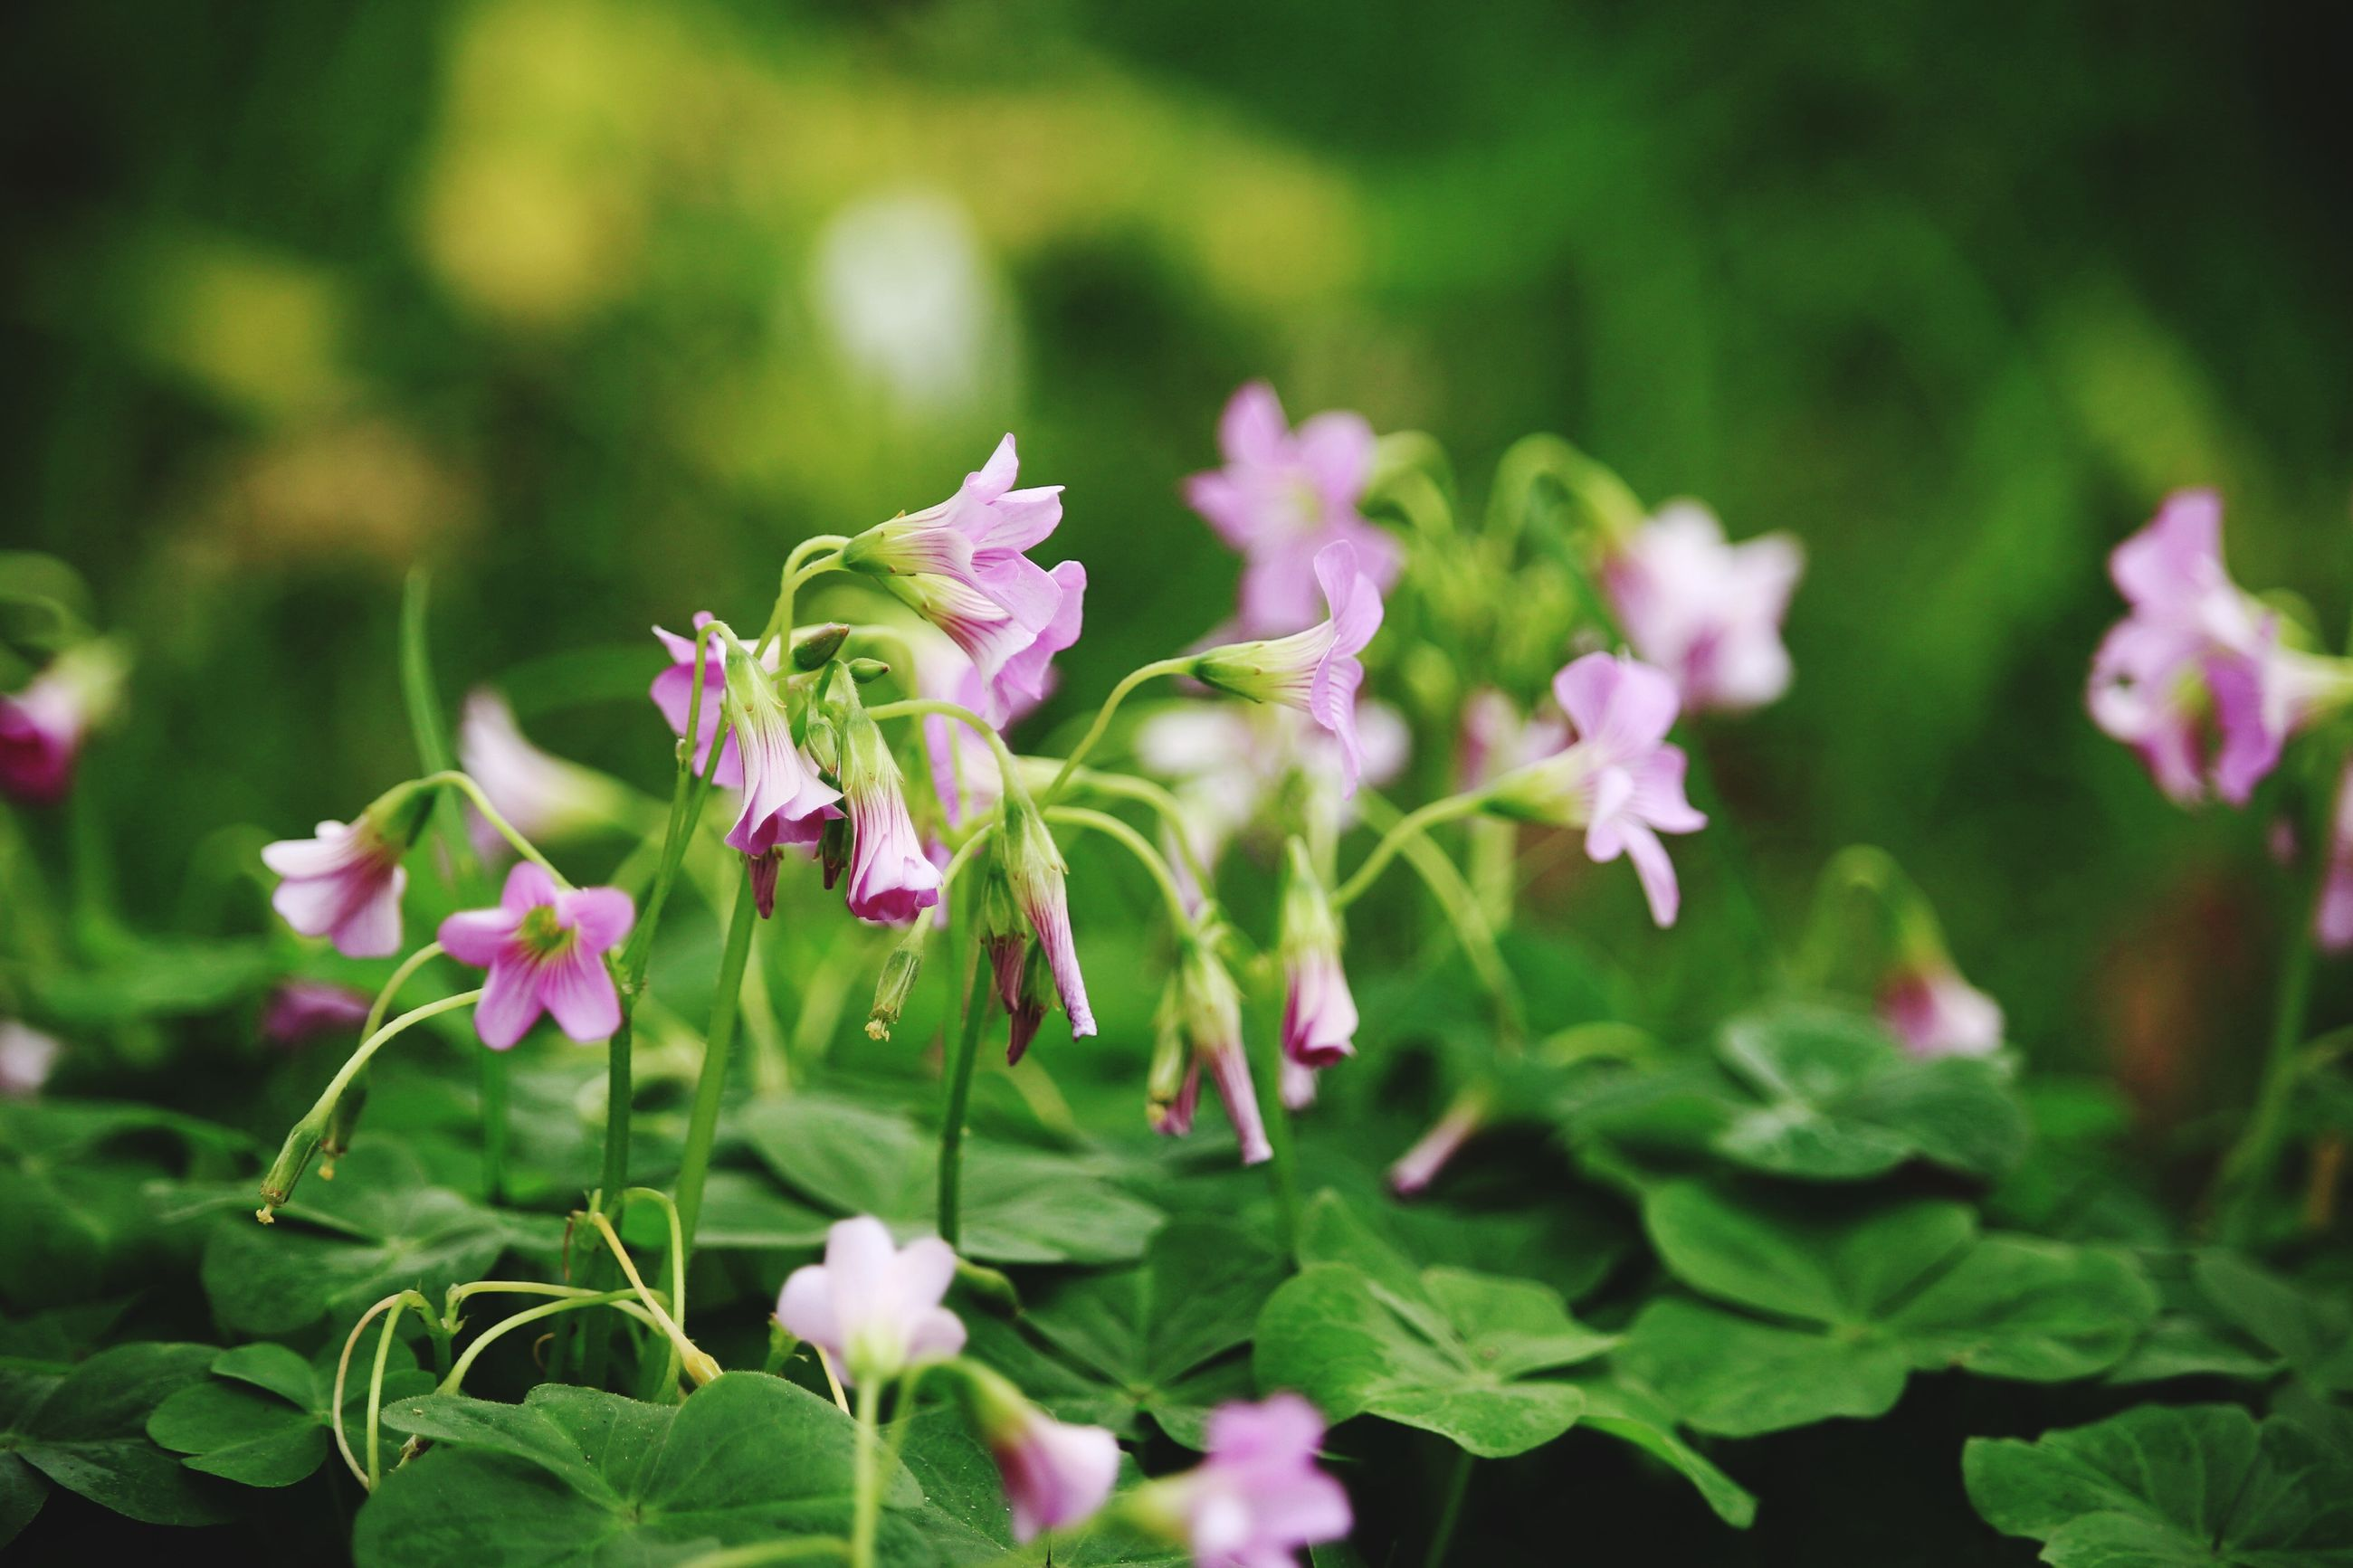 flower, freshness, growth, fragility, petal, beauty in nature, plant, focus on foreground, blooming, nature, flower head, close-up, pink color, leaf, purple, green color, in bloom, selective focus, stem, park - man made space